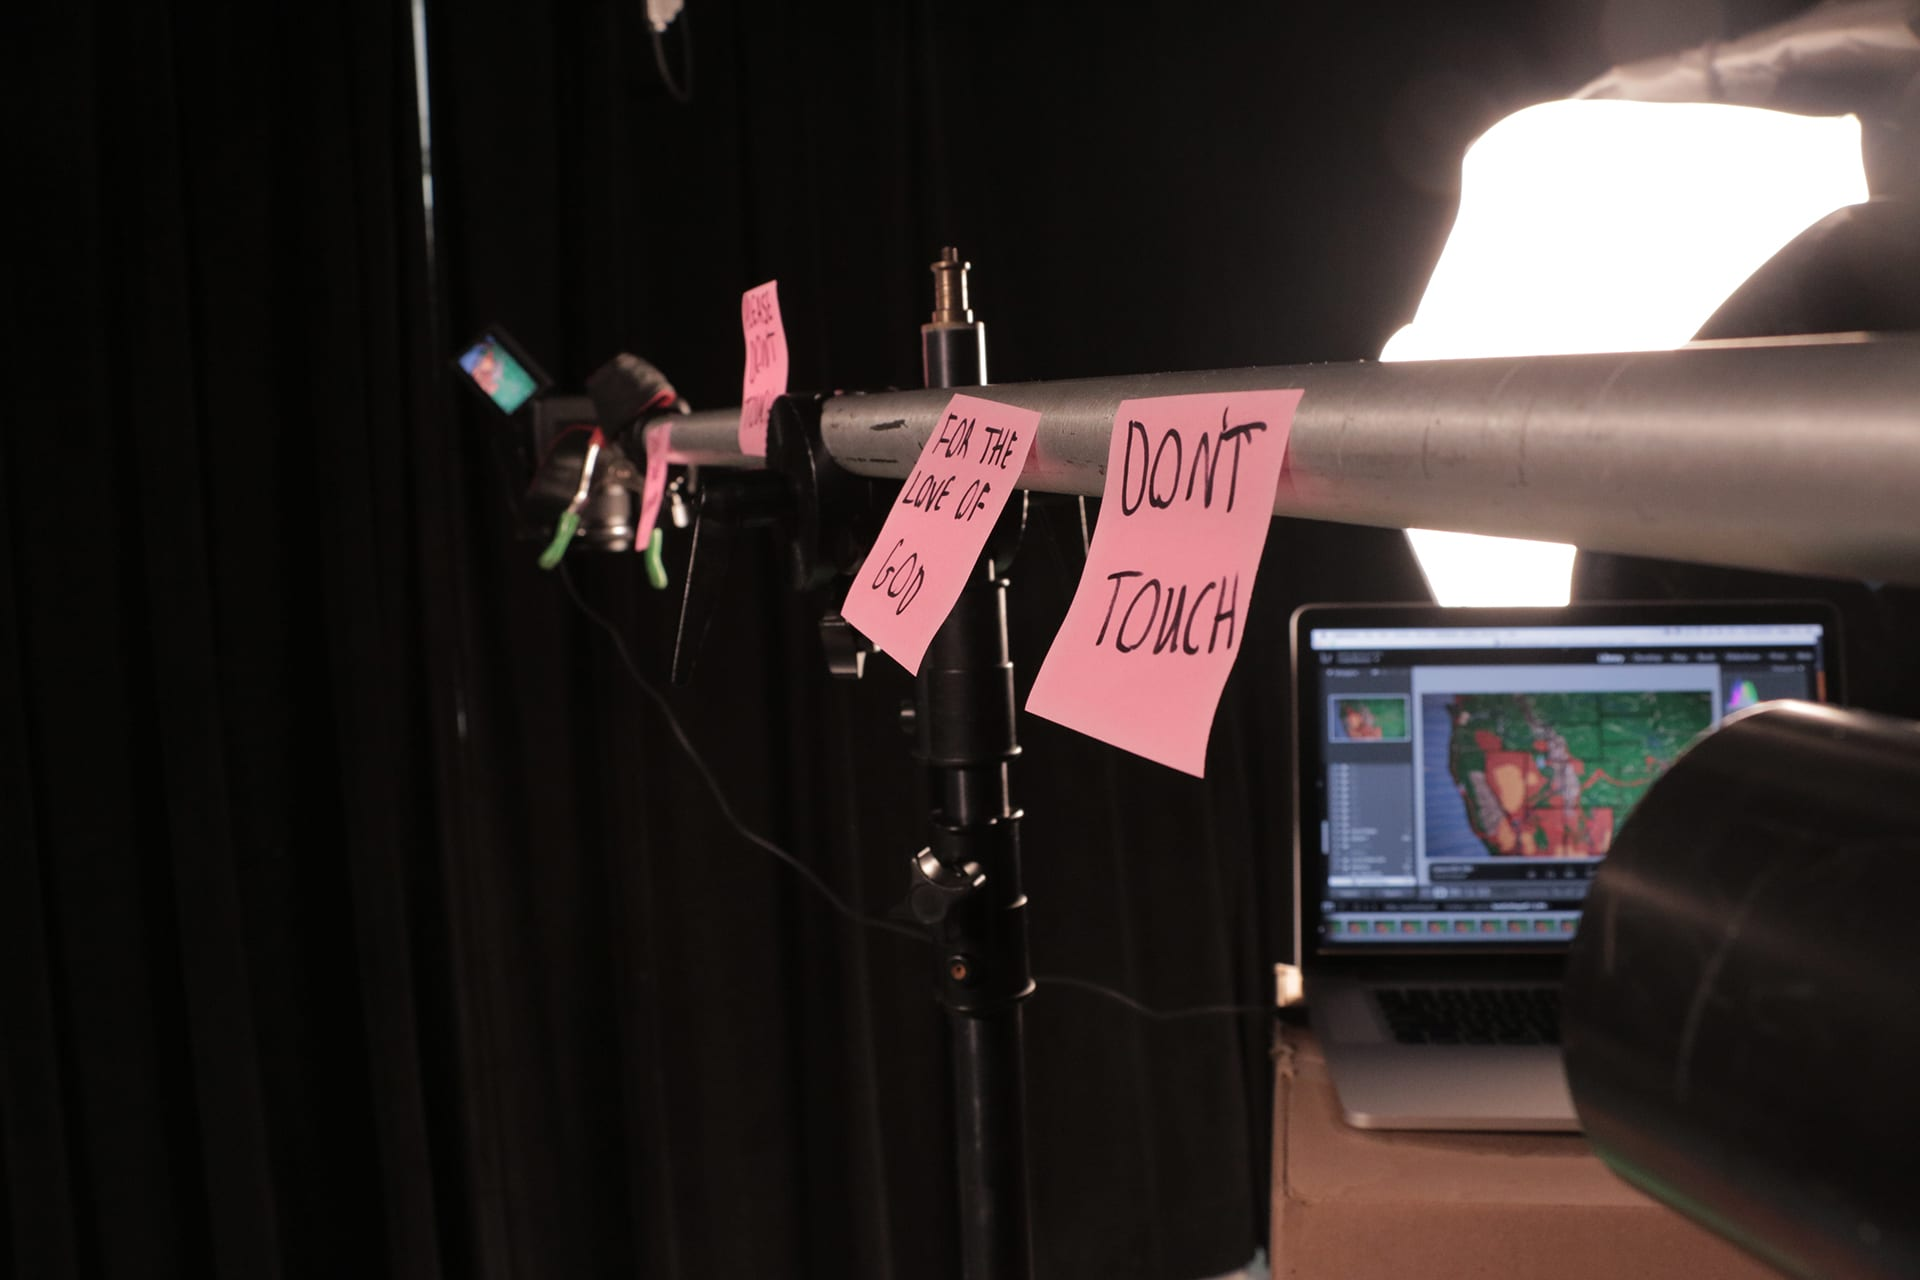 Sticky-notes on the camera arm pleading to not be touched.